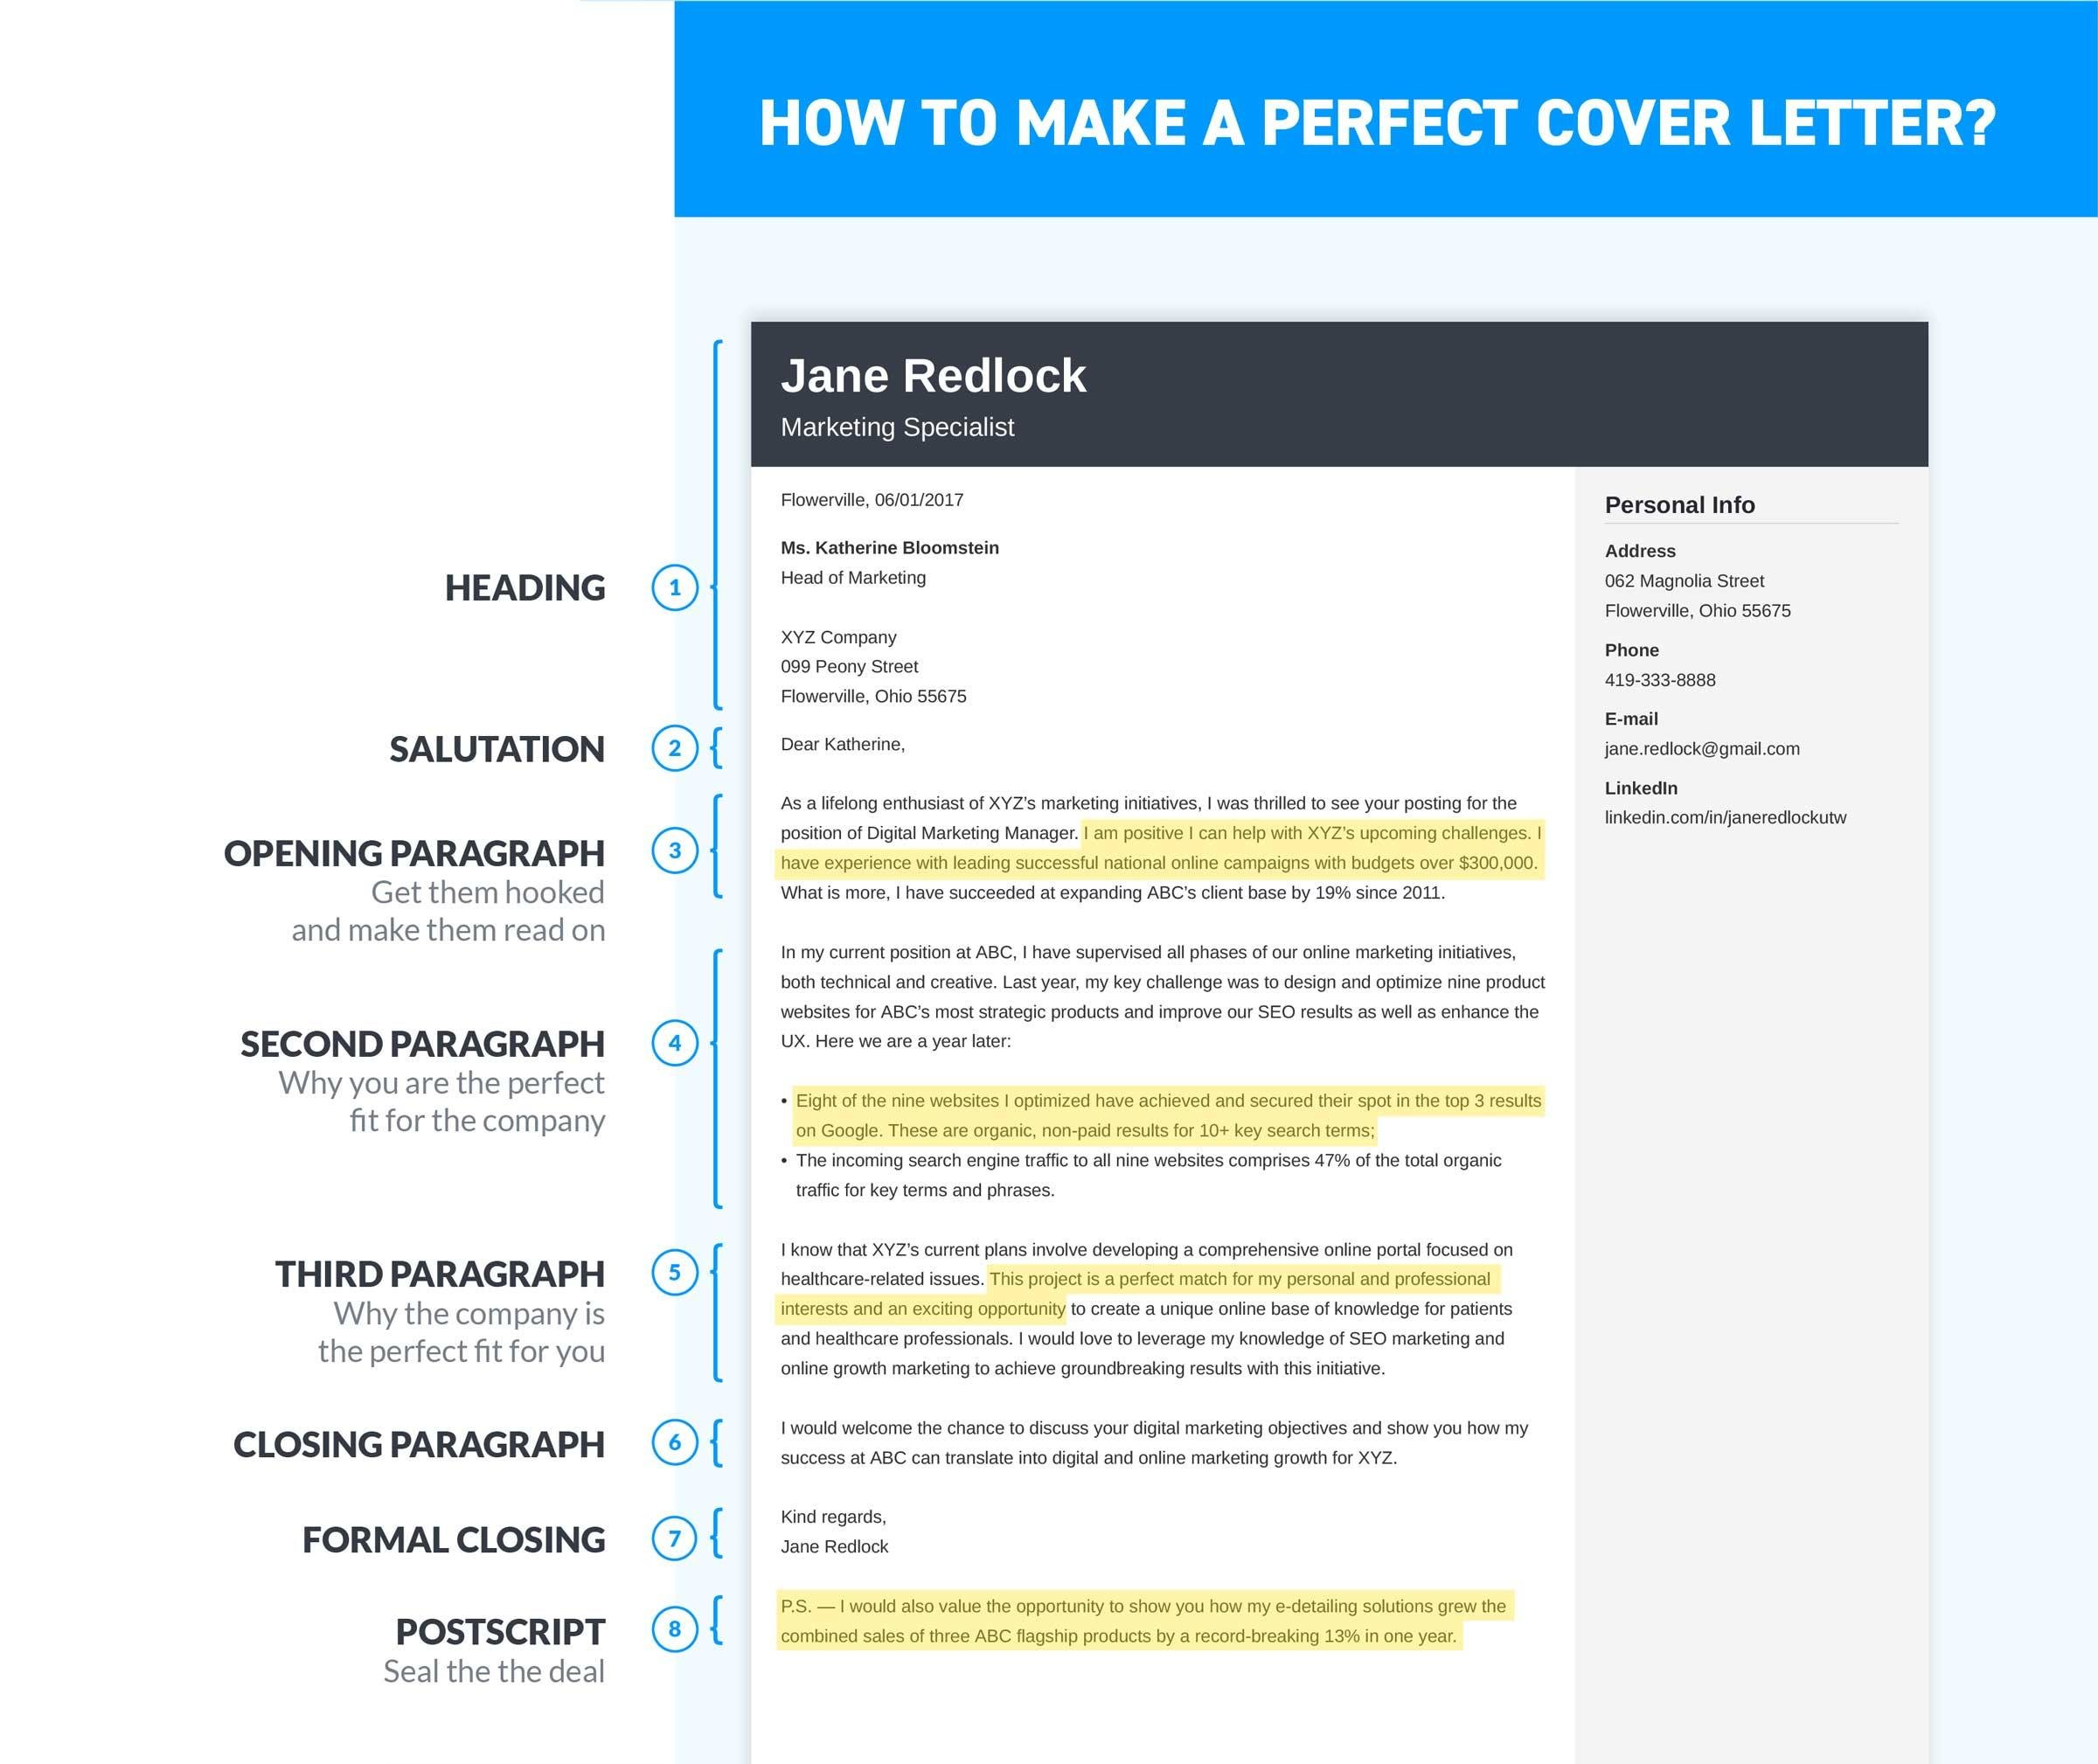 How To Make A Perfect Cover Letter Infographic  The Perfect Cover Letter